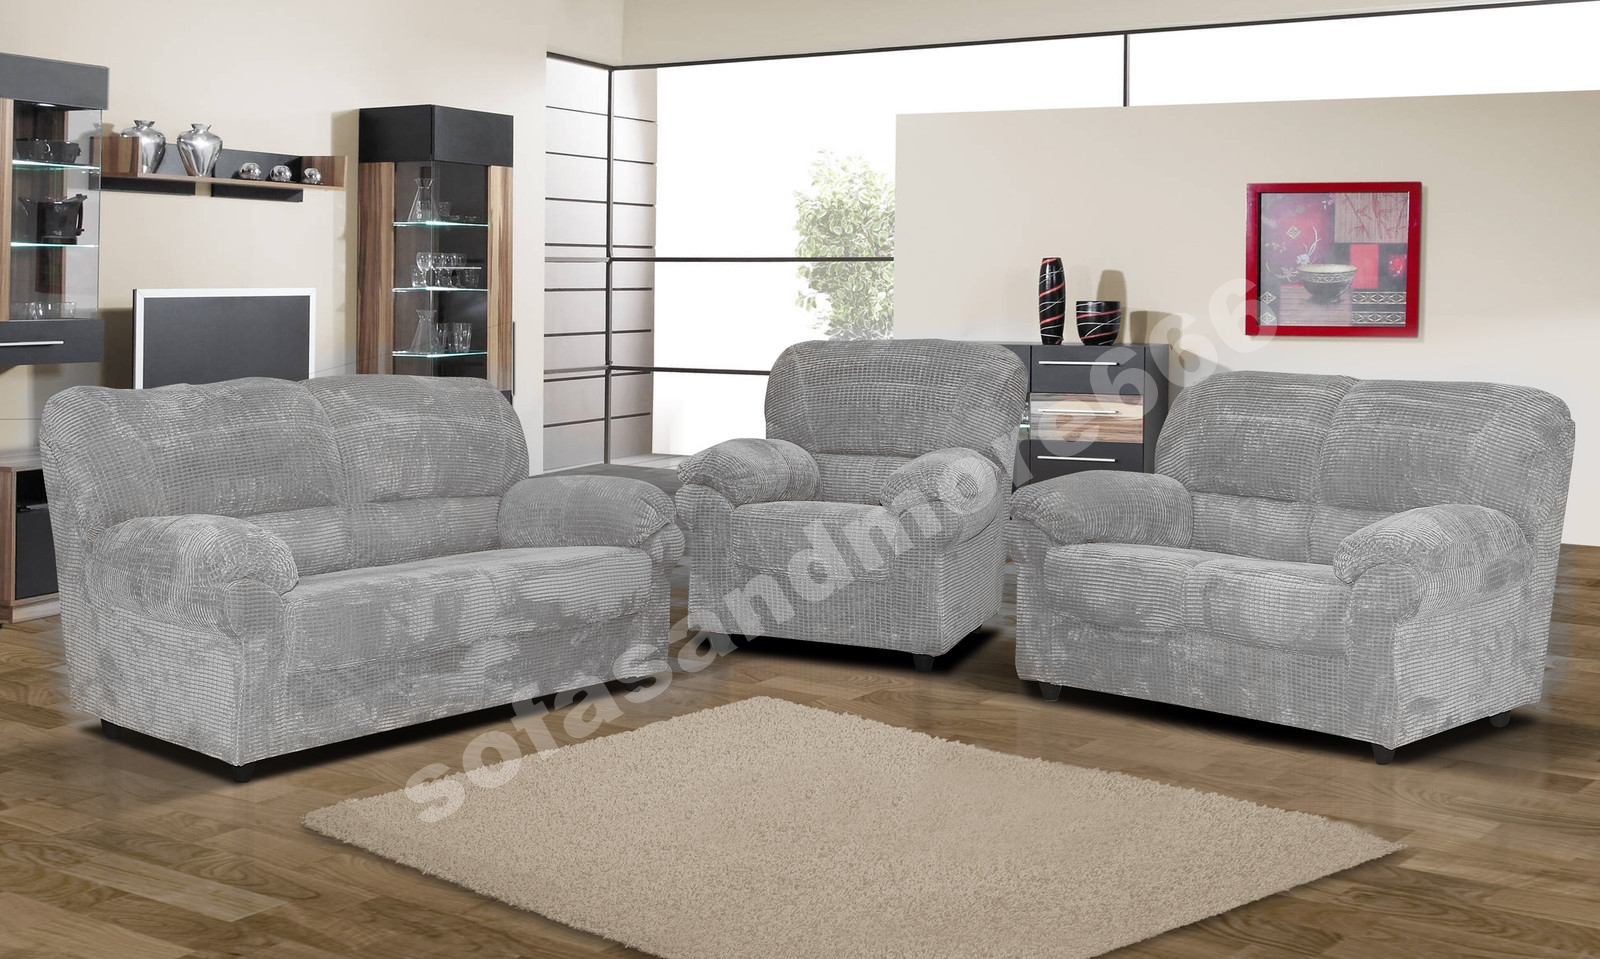 leather sofa manufacturers in wales pillows target brand new candy set only 3 432 seater brown or black